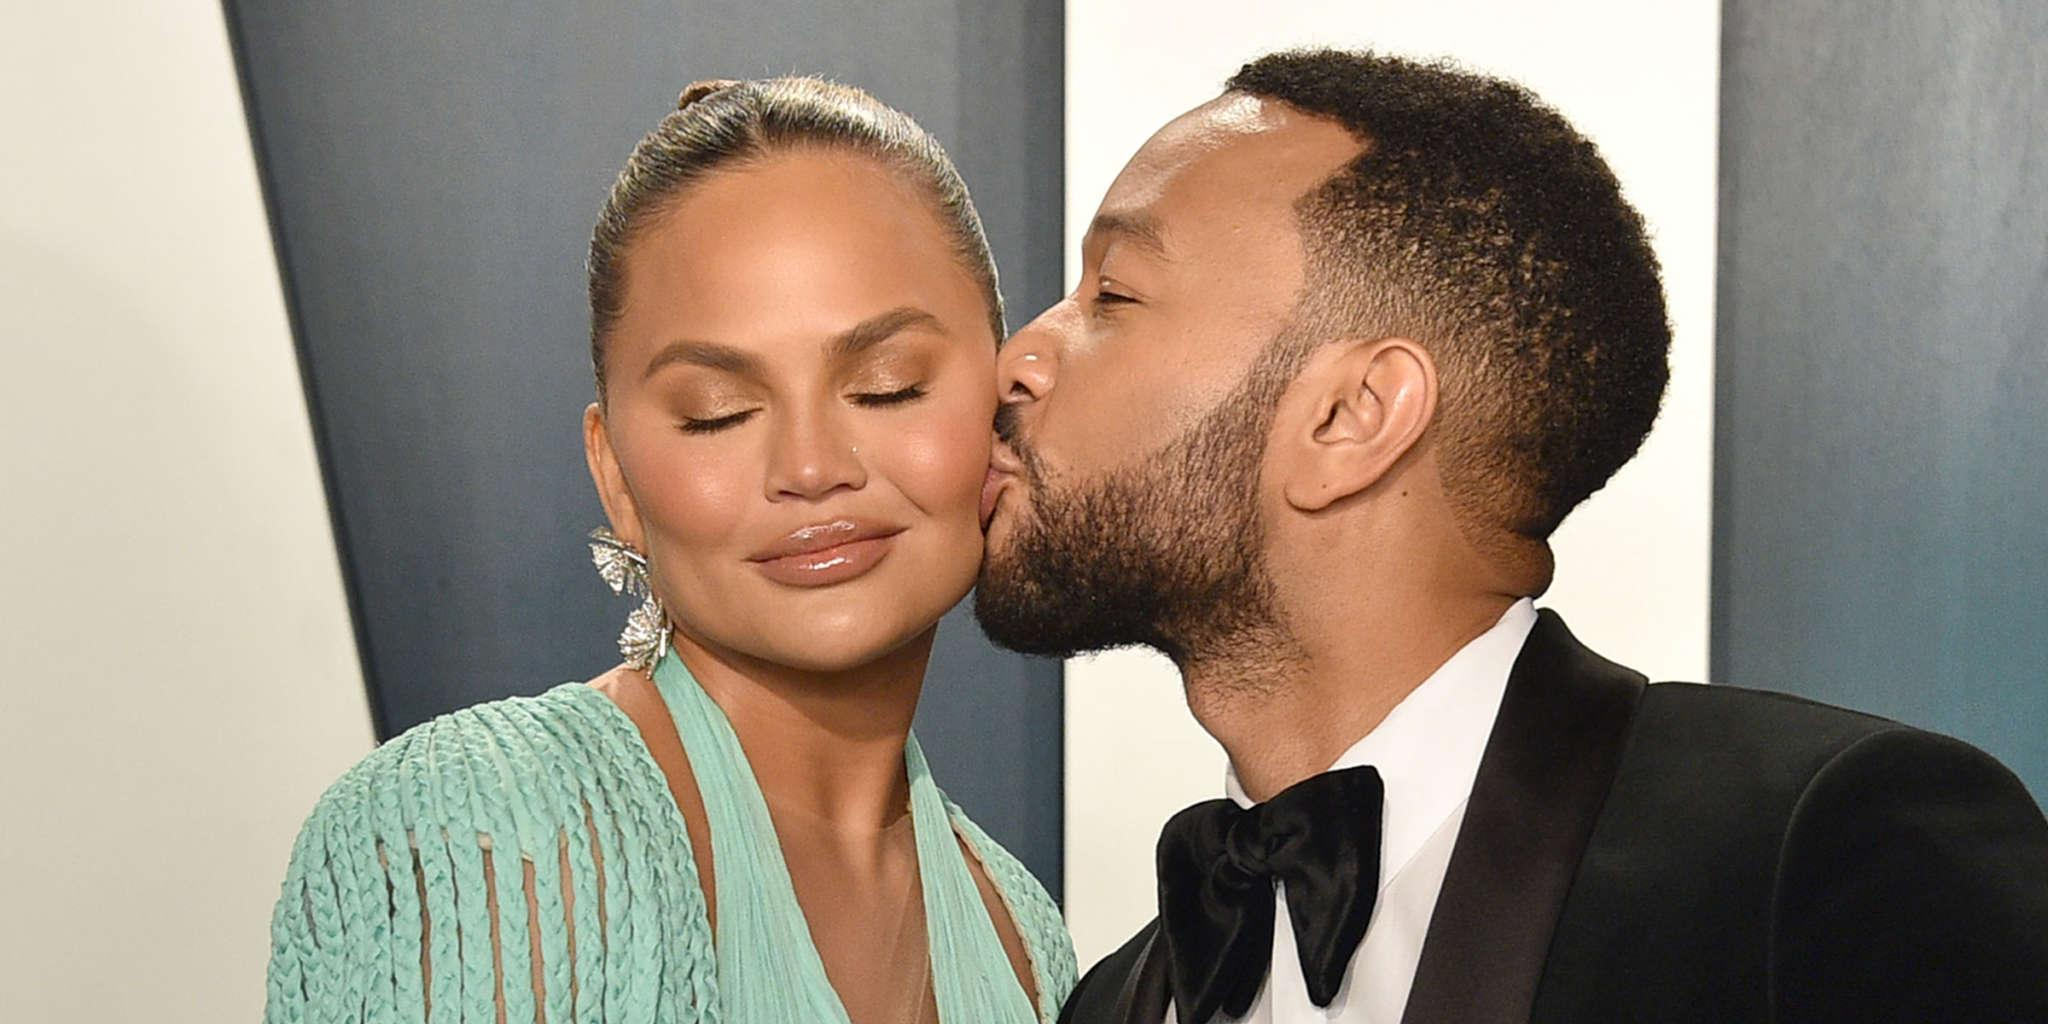 Chrissy Teigen Claps Back At Hater Threatening And Insulting Her!